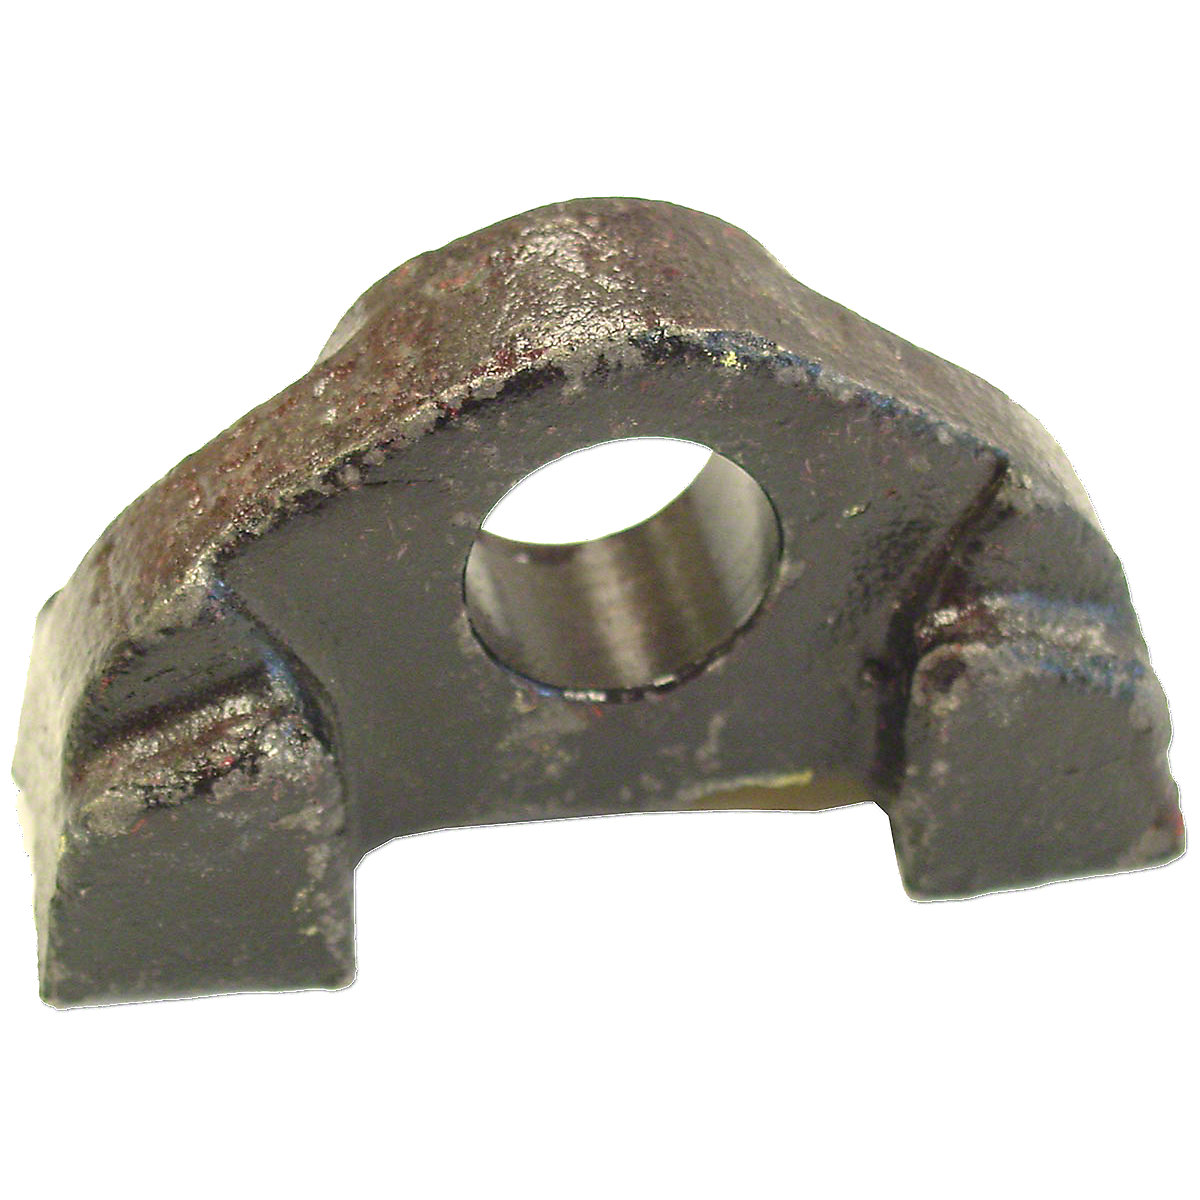 Eccentric Style Rear Wheel Clamp For Allis Chalmers: B, C, IB.